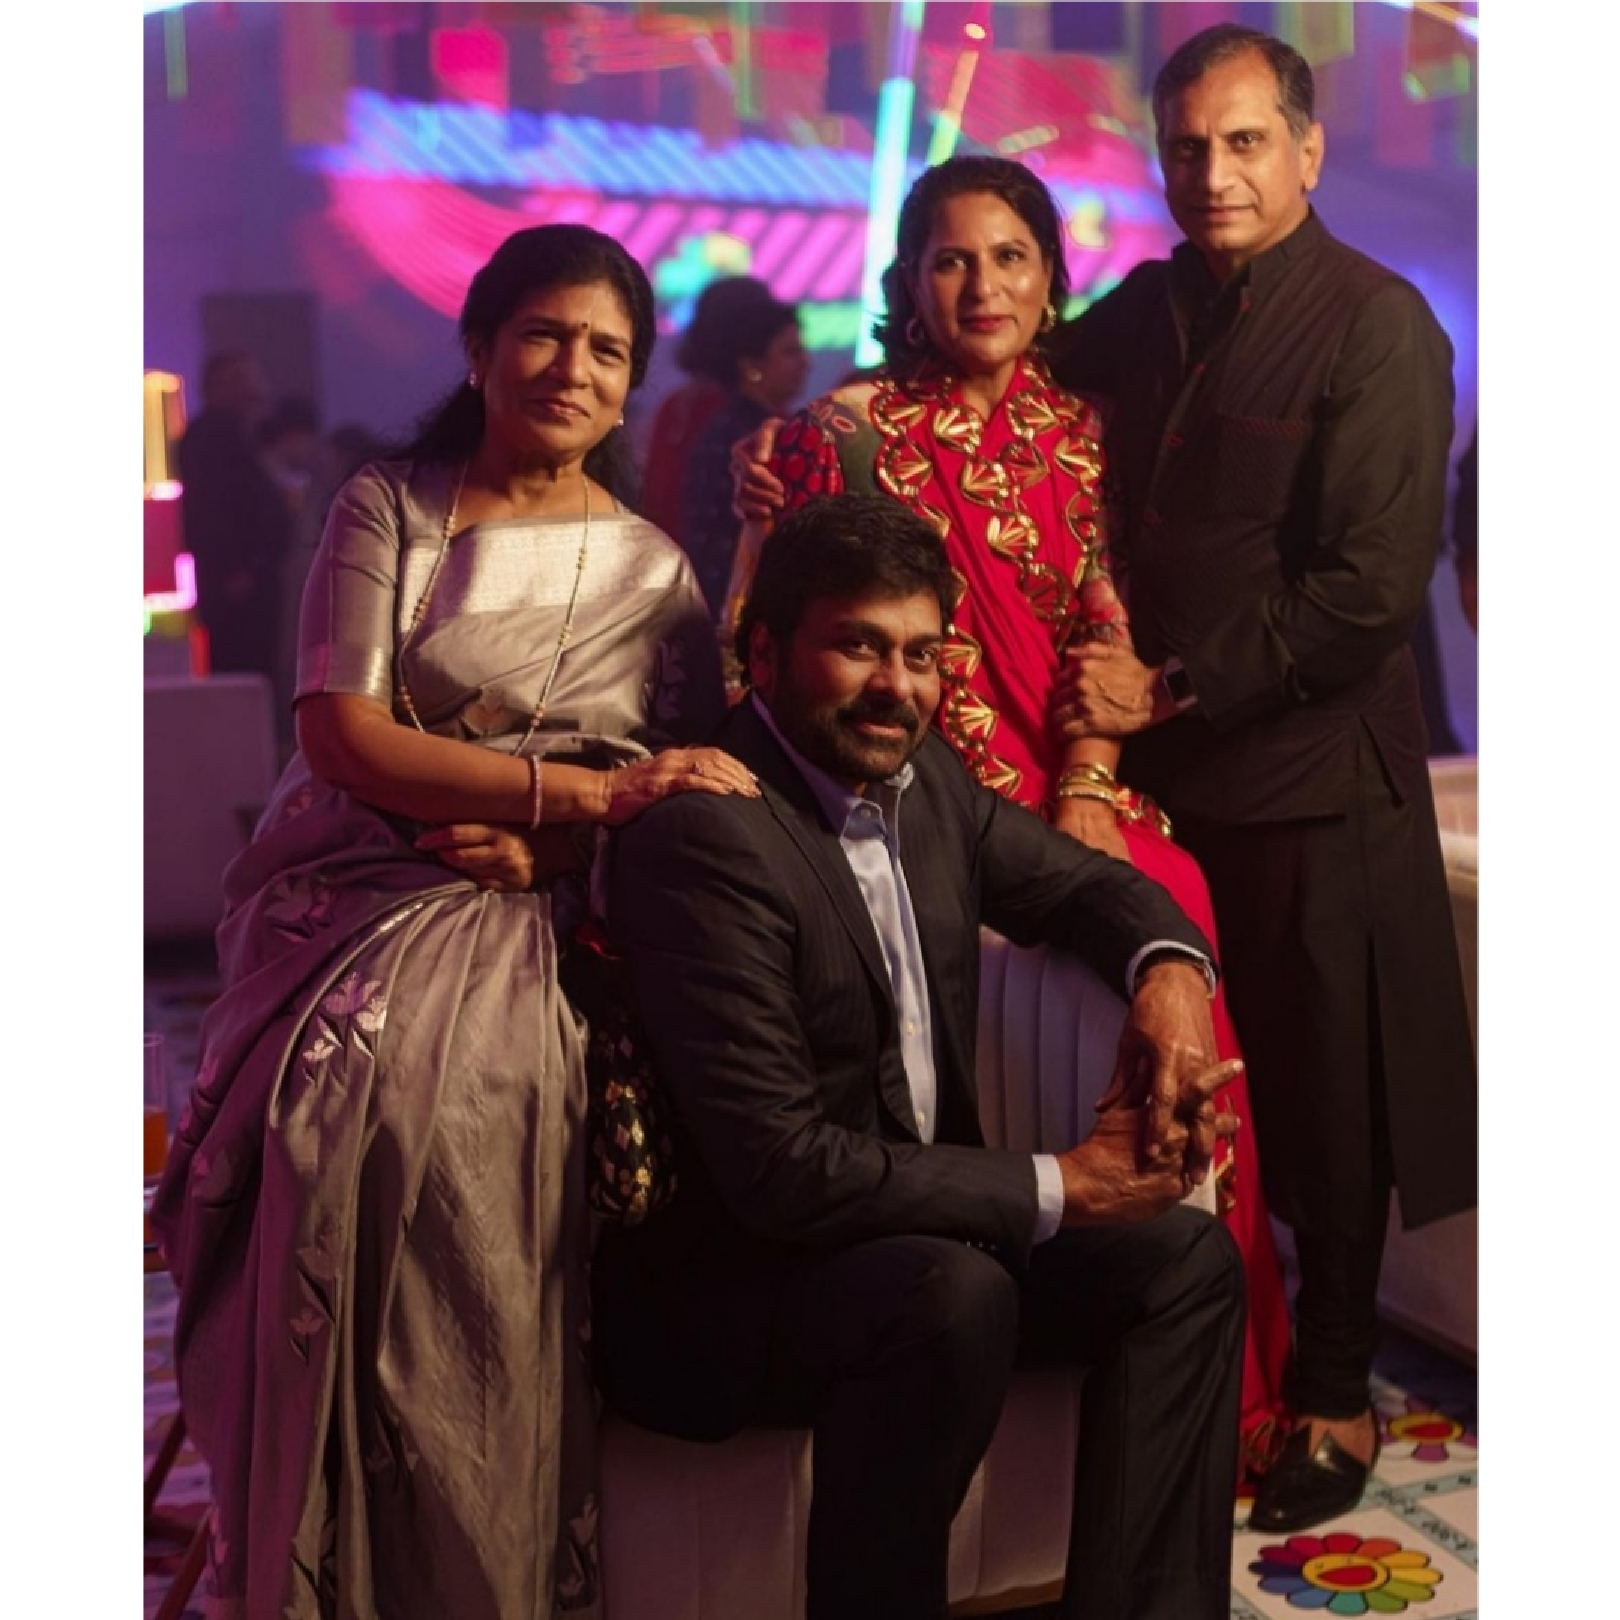 Chiranjeevi and Family shows up in precious and picture perfect pics